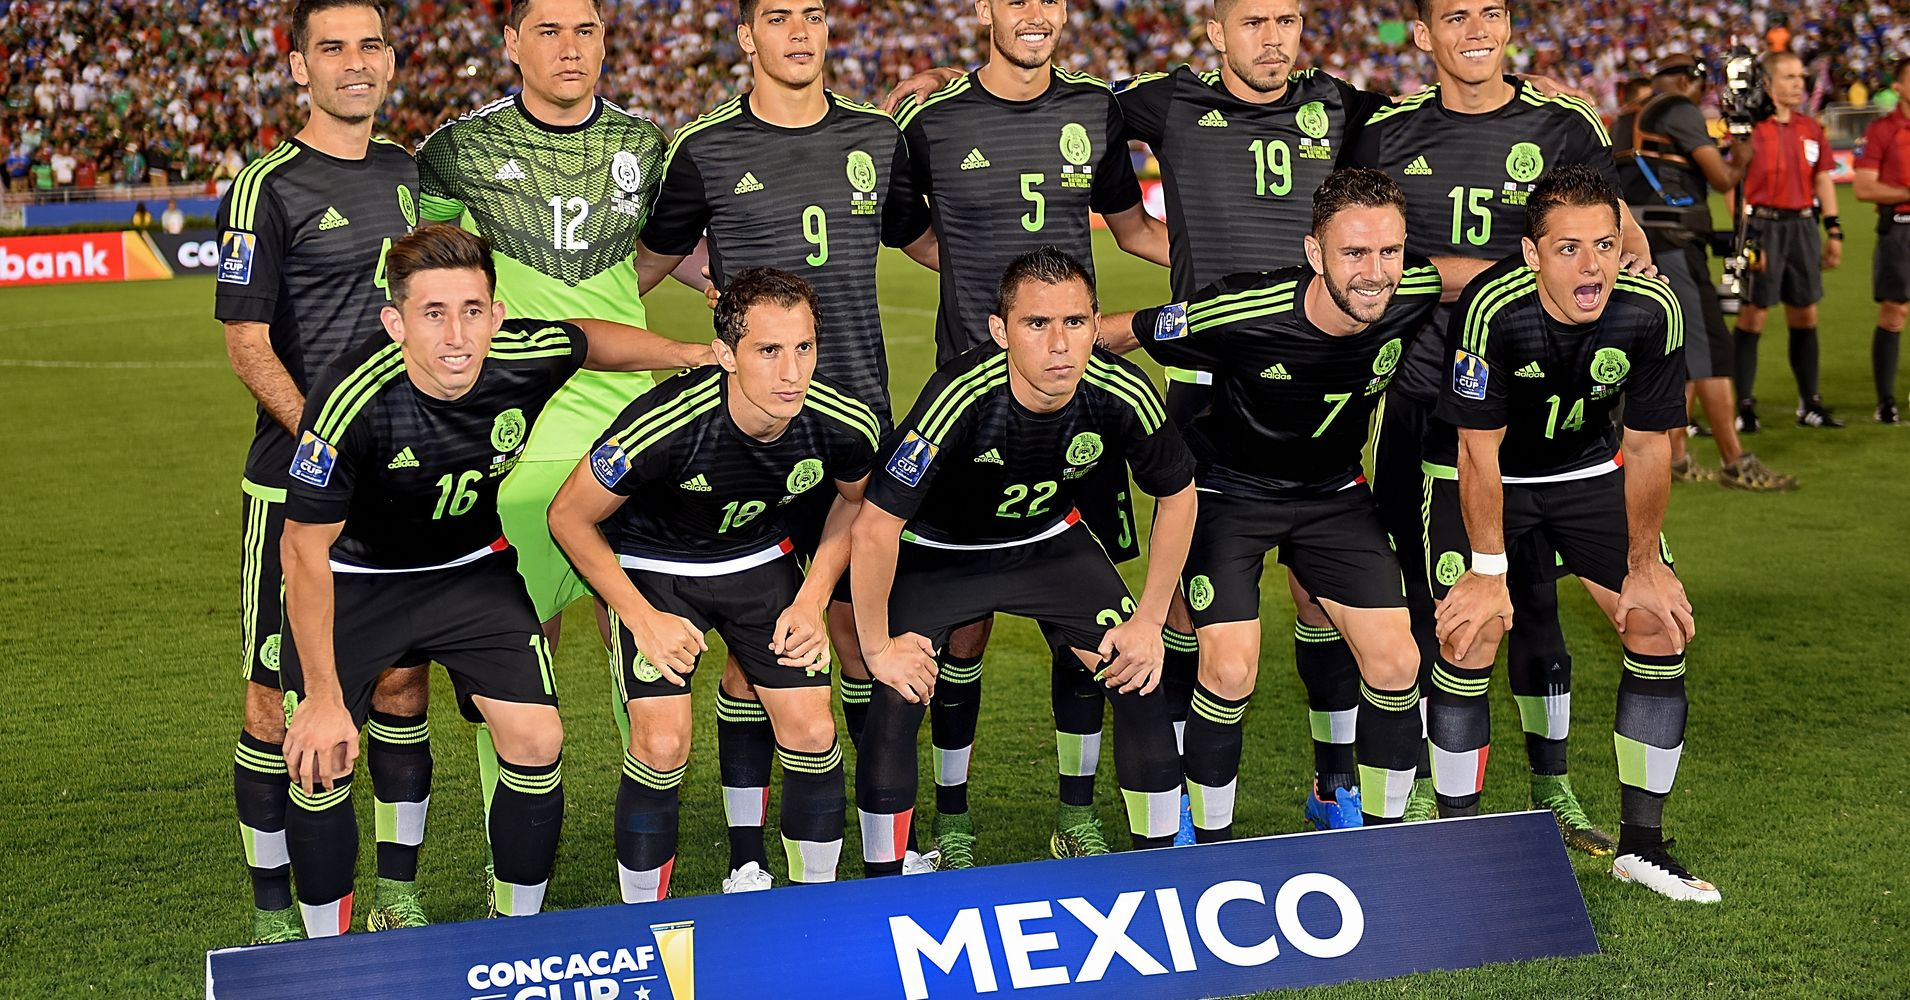 mexicos national soccer team takes a stand against